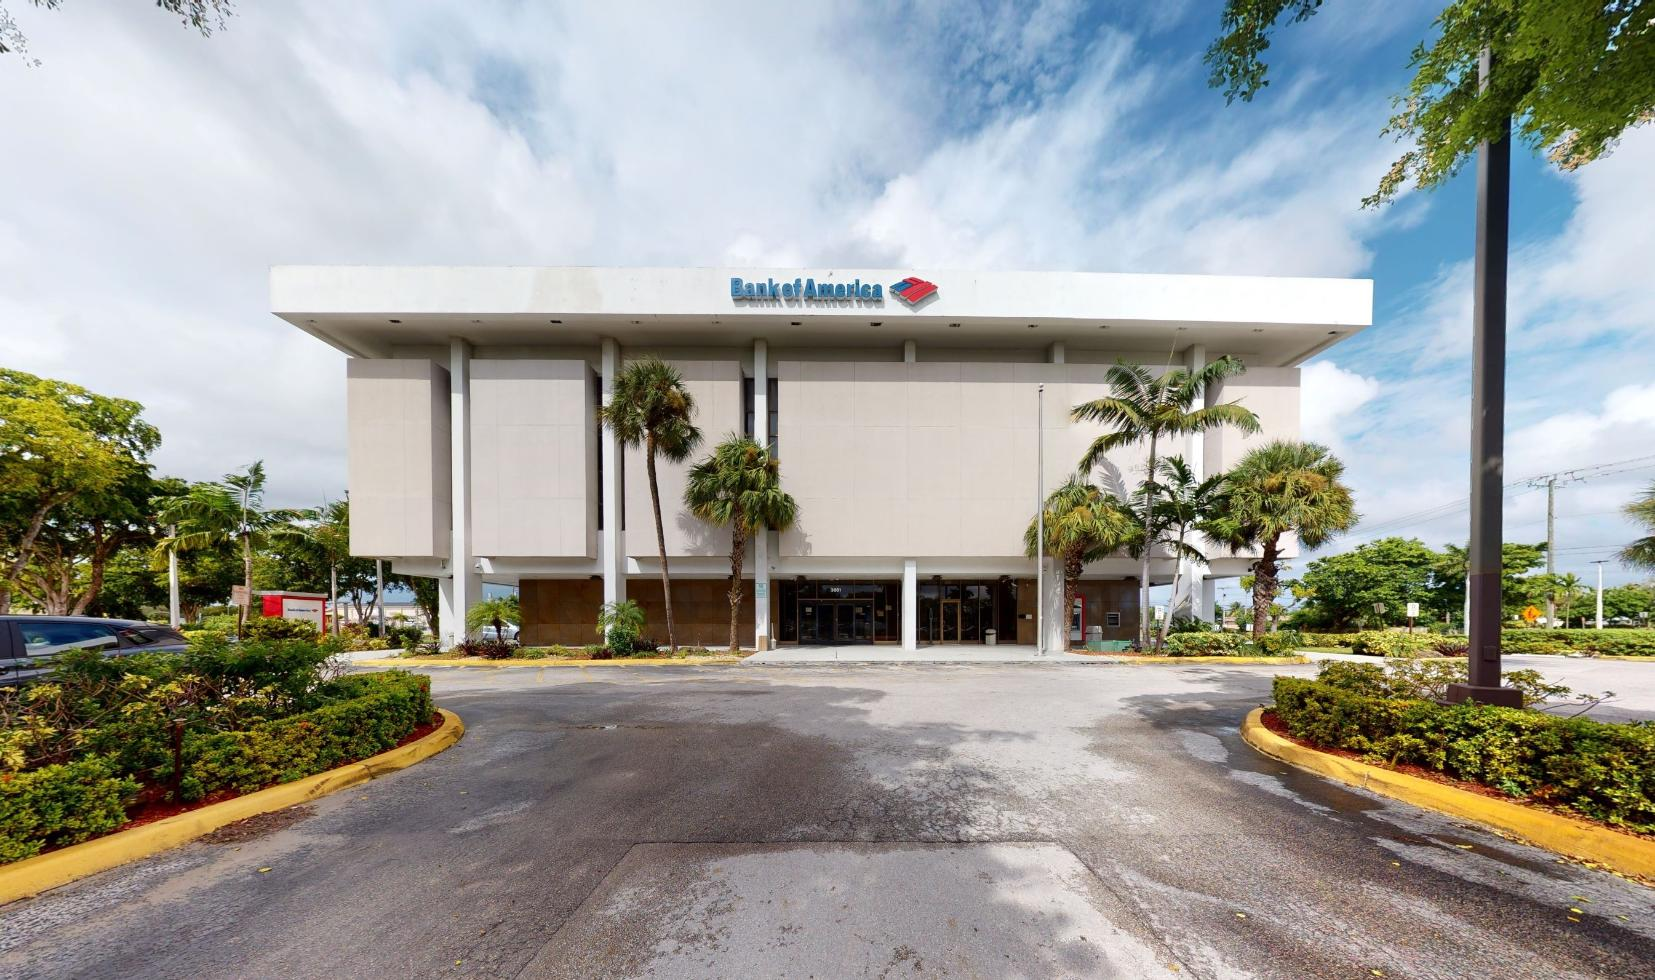 Bank of America financial center with drive-thru ATM | 3661 W Oakland Park Blvd, Lauderdale Lakes, FL 33311